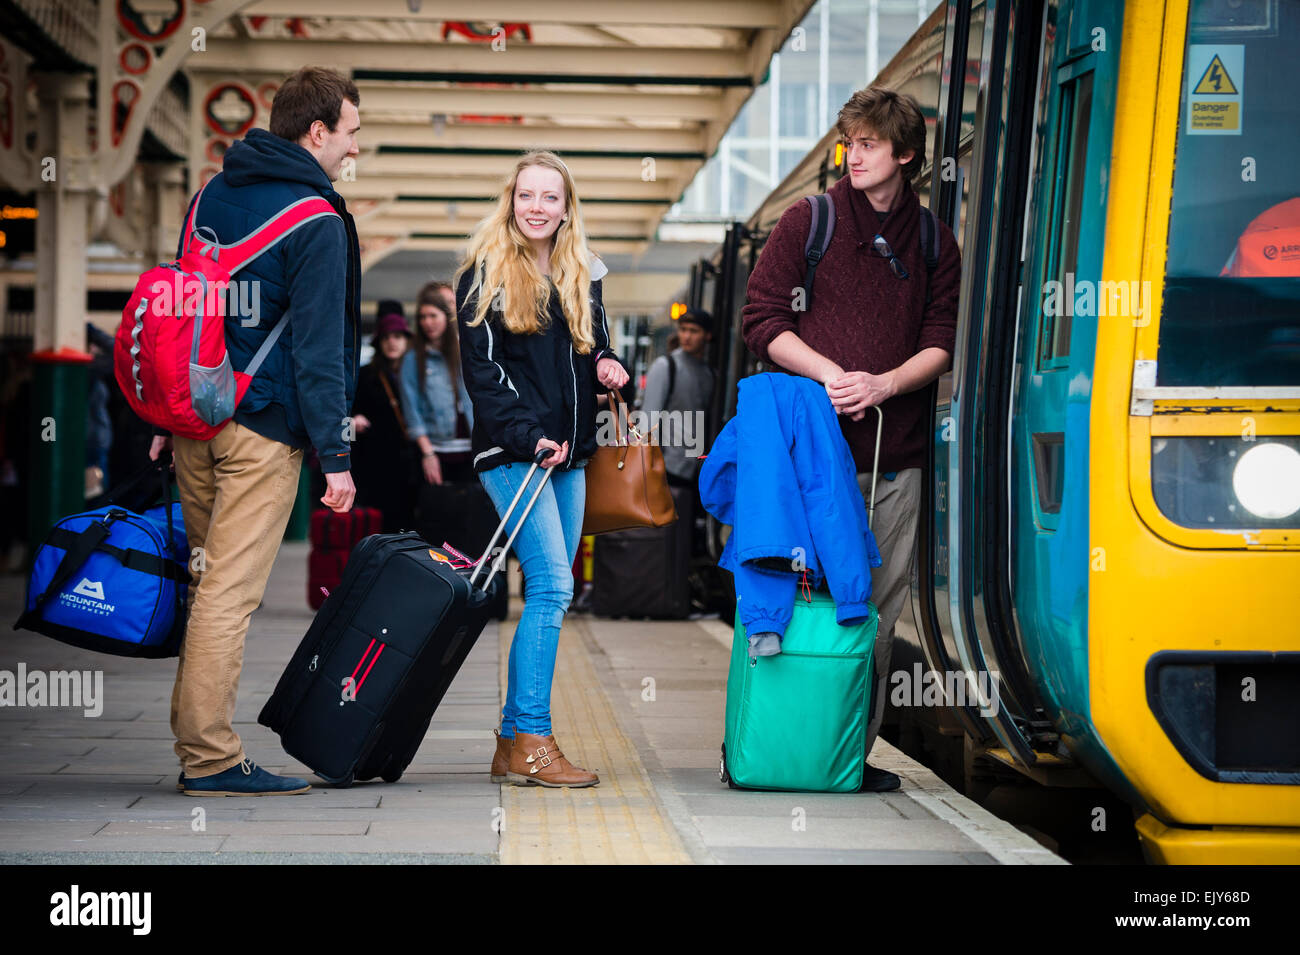 Public transport: University Students with their luggage going home catching an Arriva Wales train on the platform - Stock Image